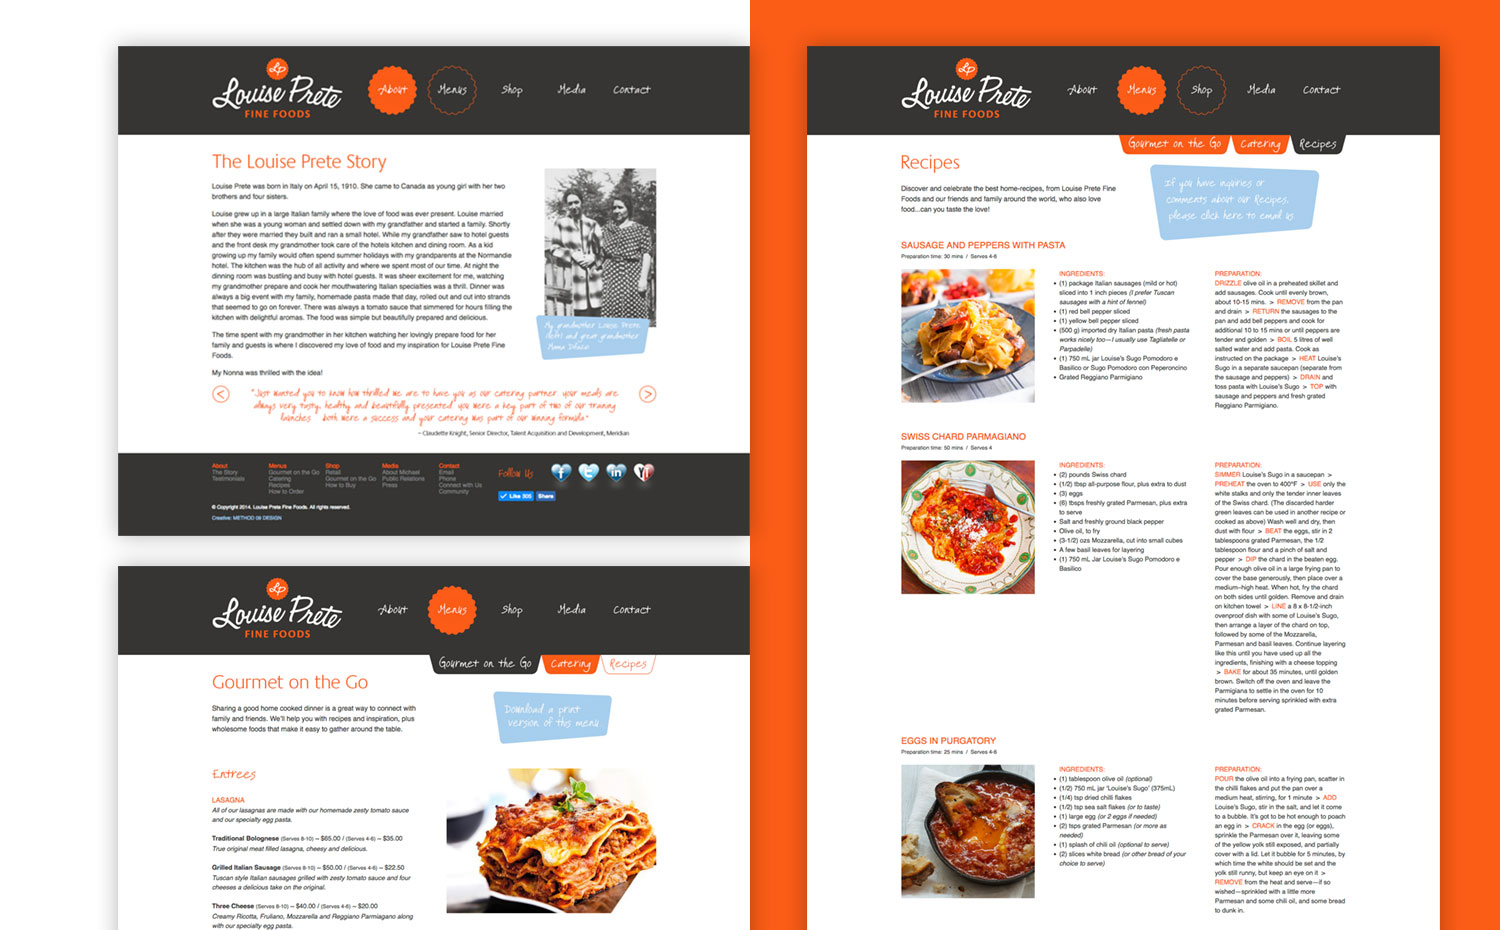 Louise Prete Fine Foods website pages